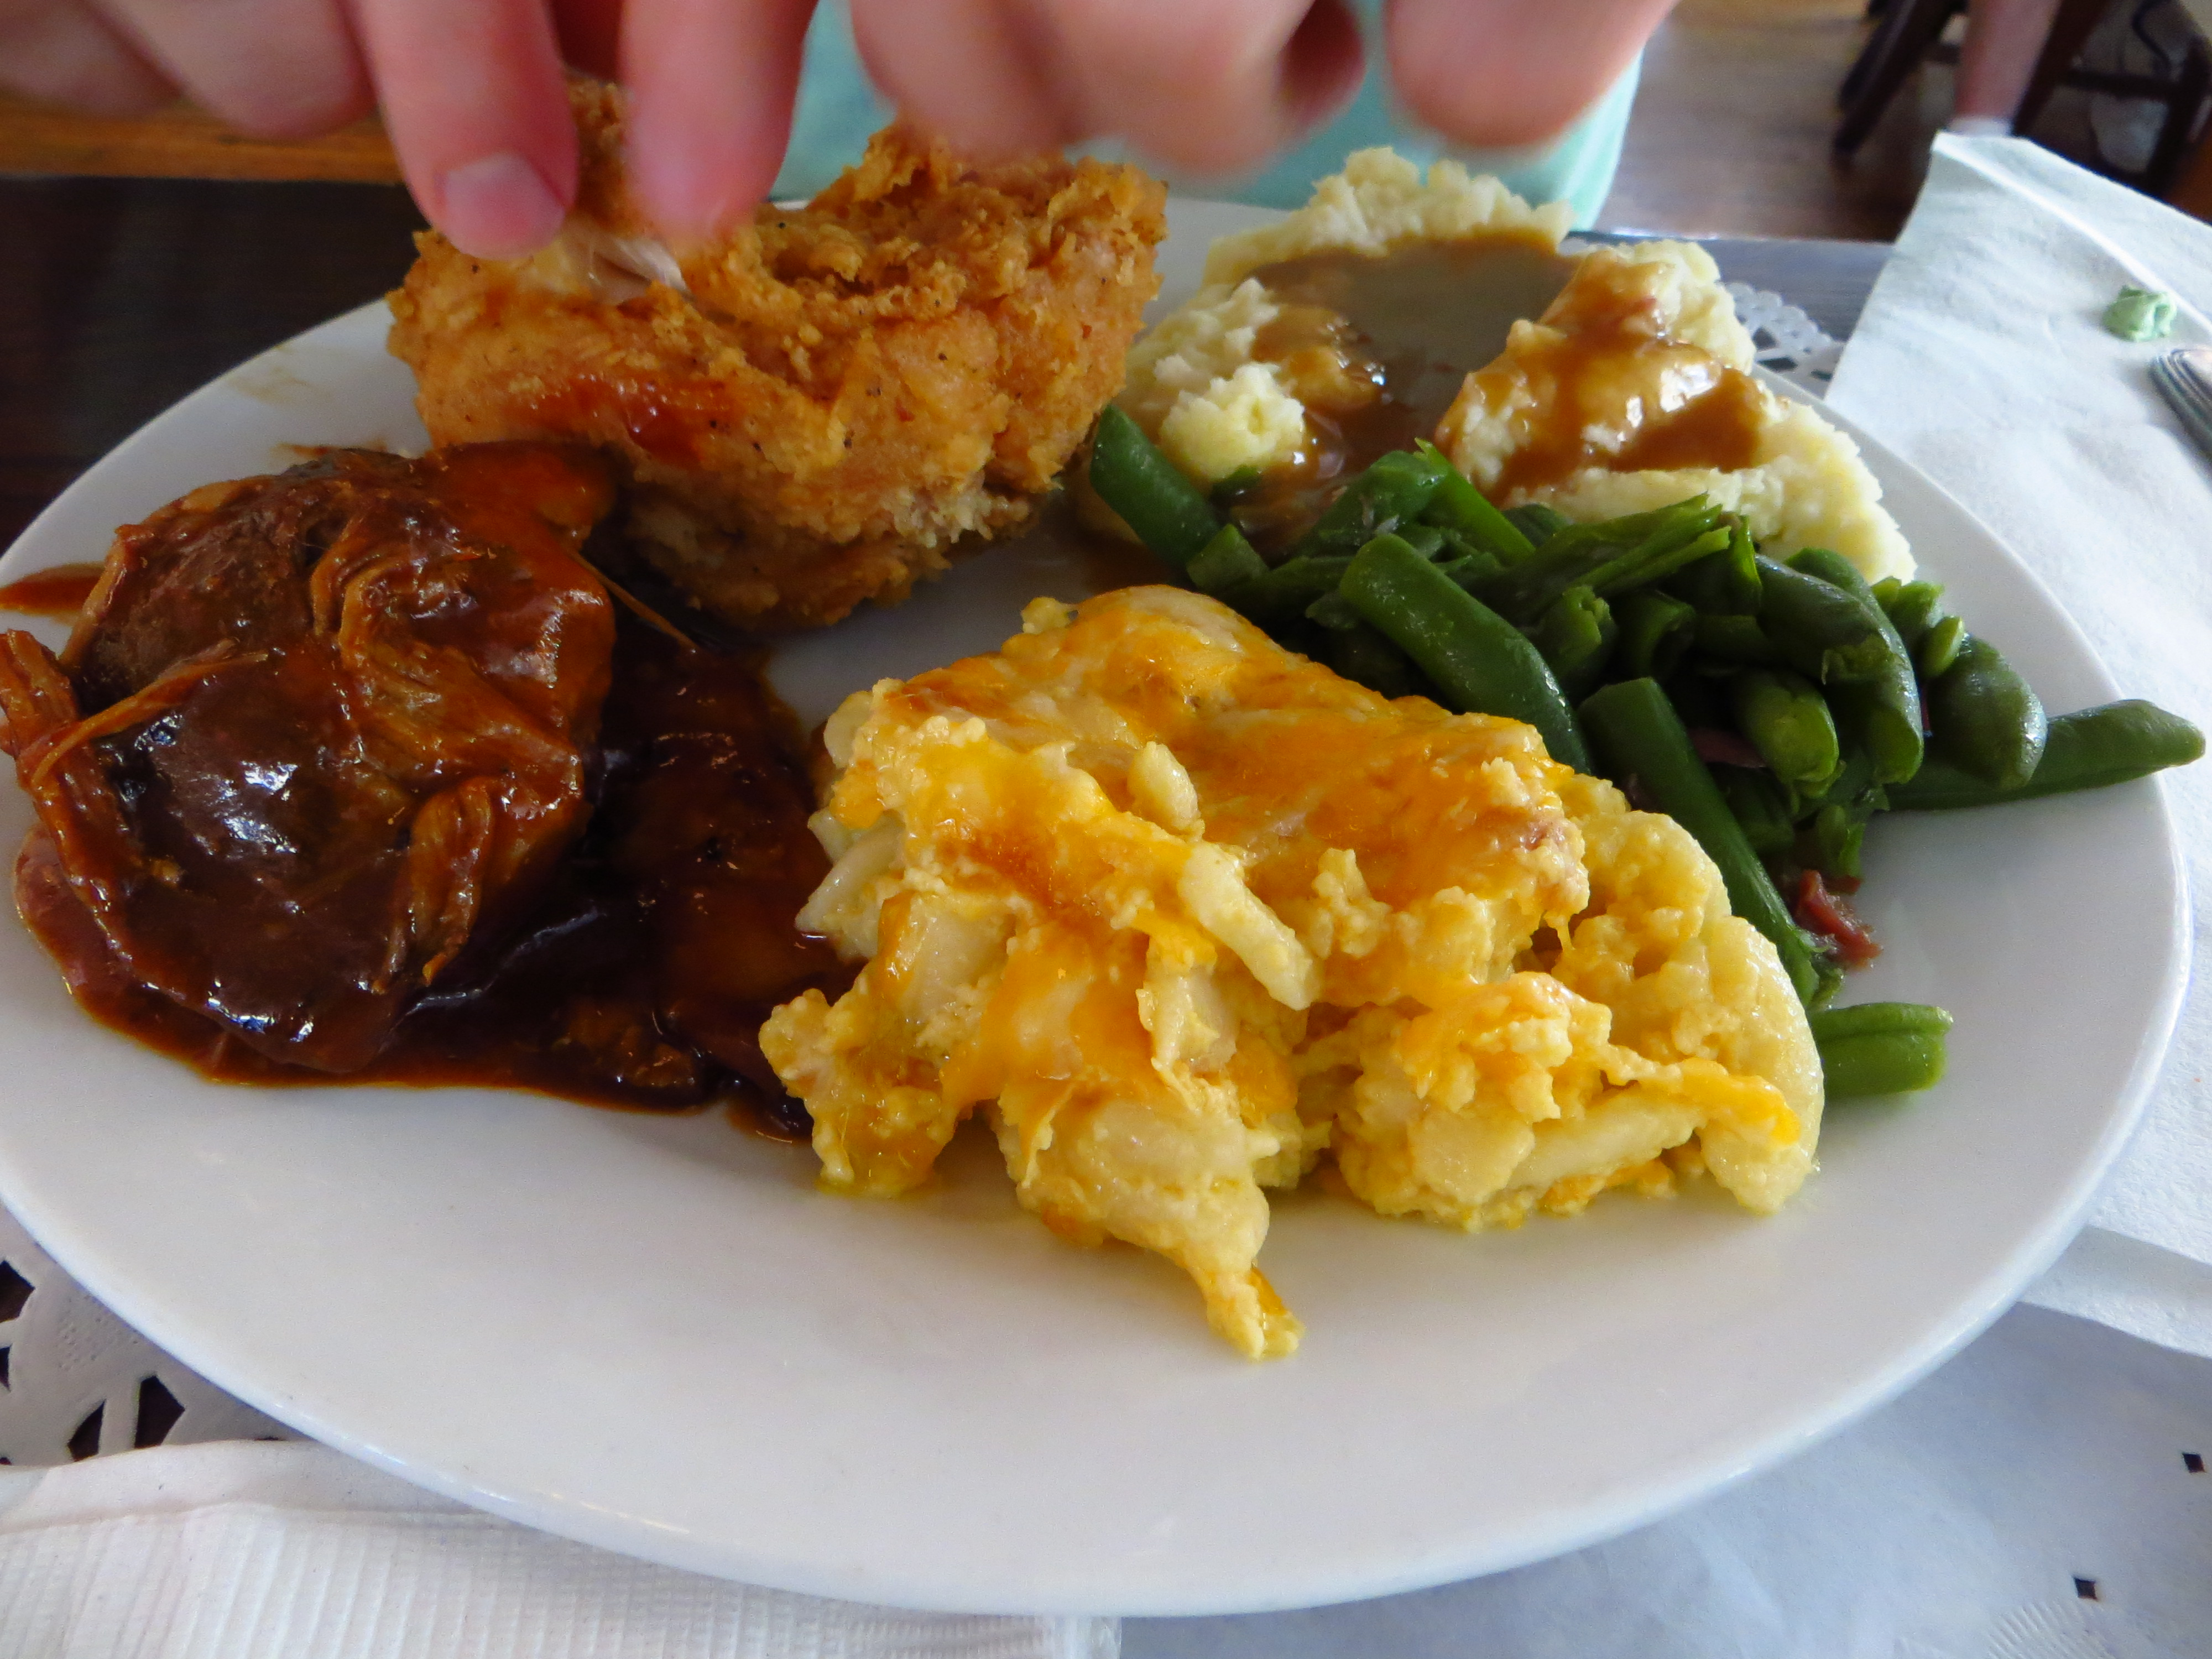 Southern cookin'